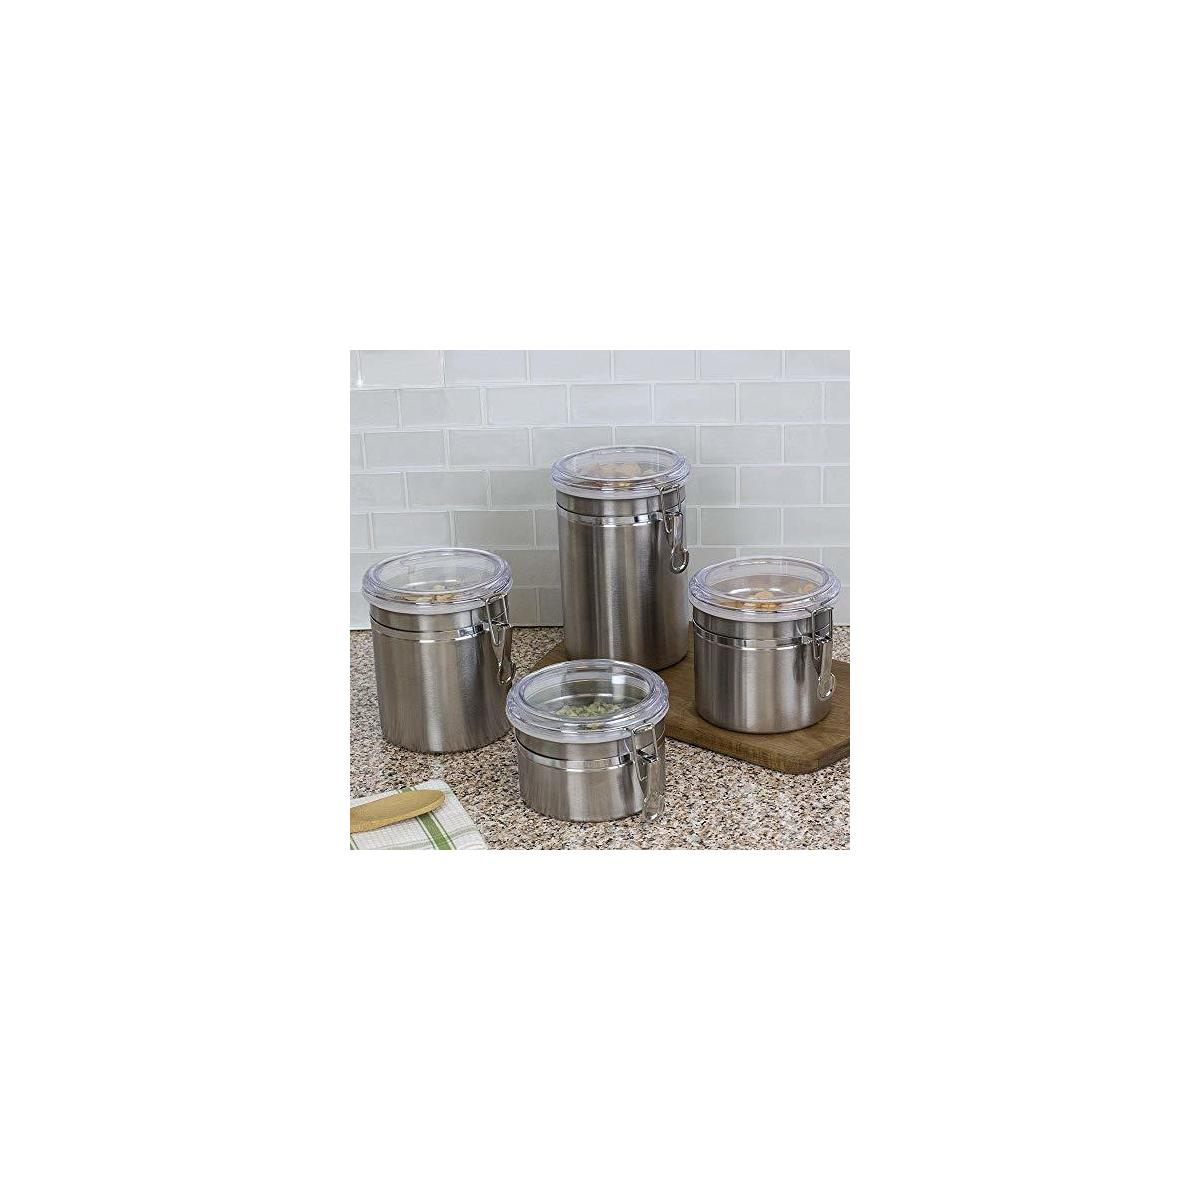 Beautiful 5-Piece Stainless Steel Airtight Canister Set, Food Storage Container for Kitchen Counter, Tea, Sugar, Coffee, Caddy, Flour Canister with Clear Acrylic Lid n' Locking Clamp